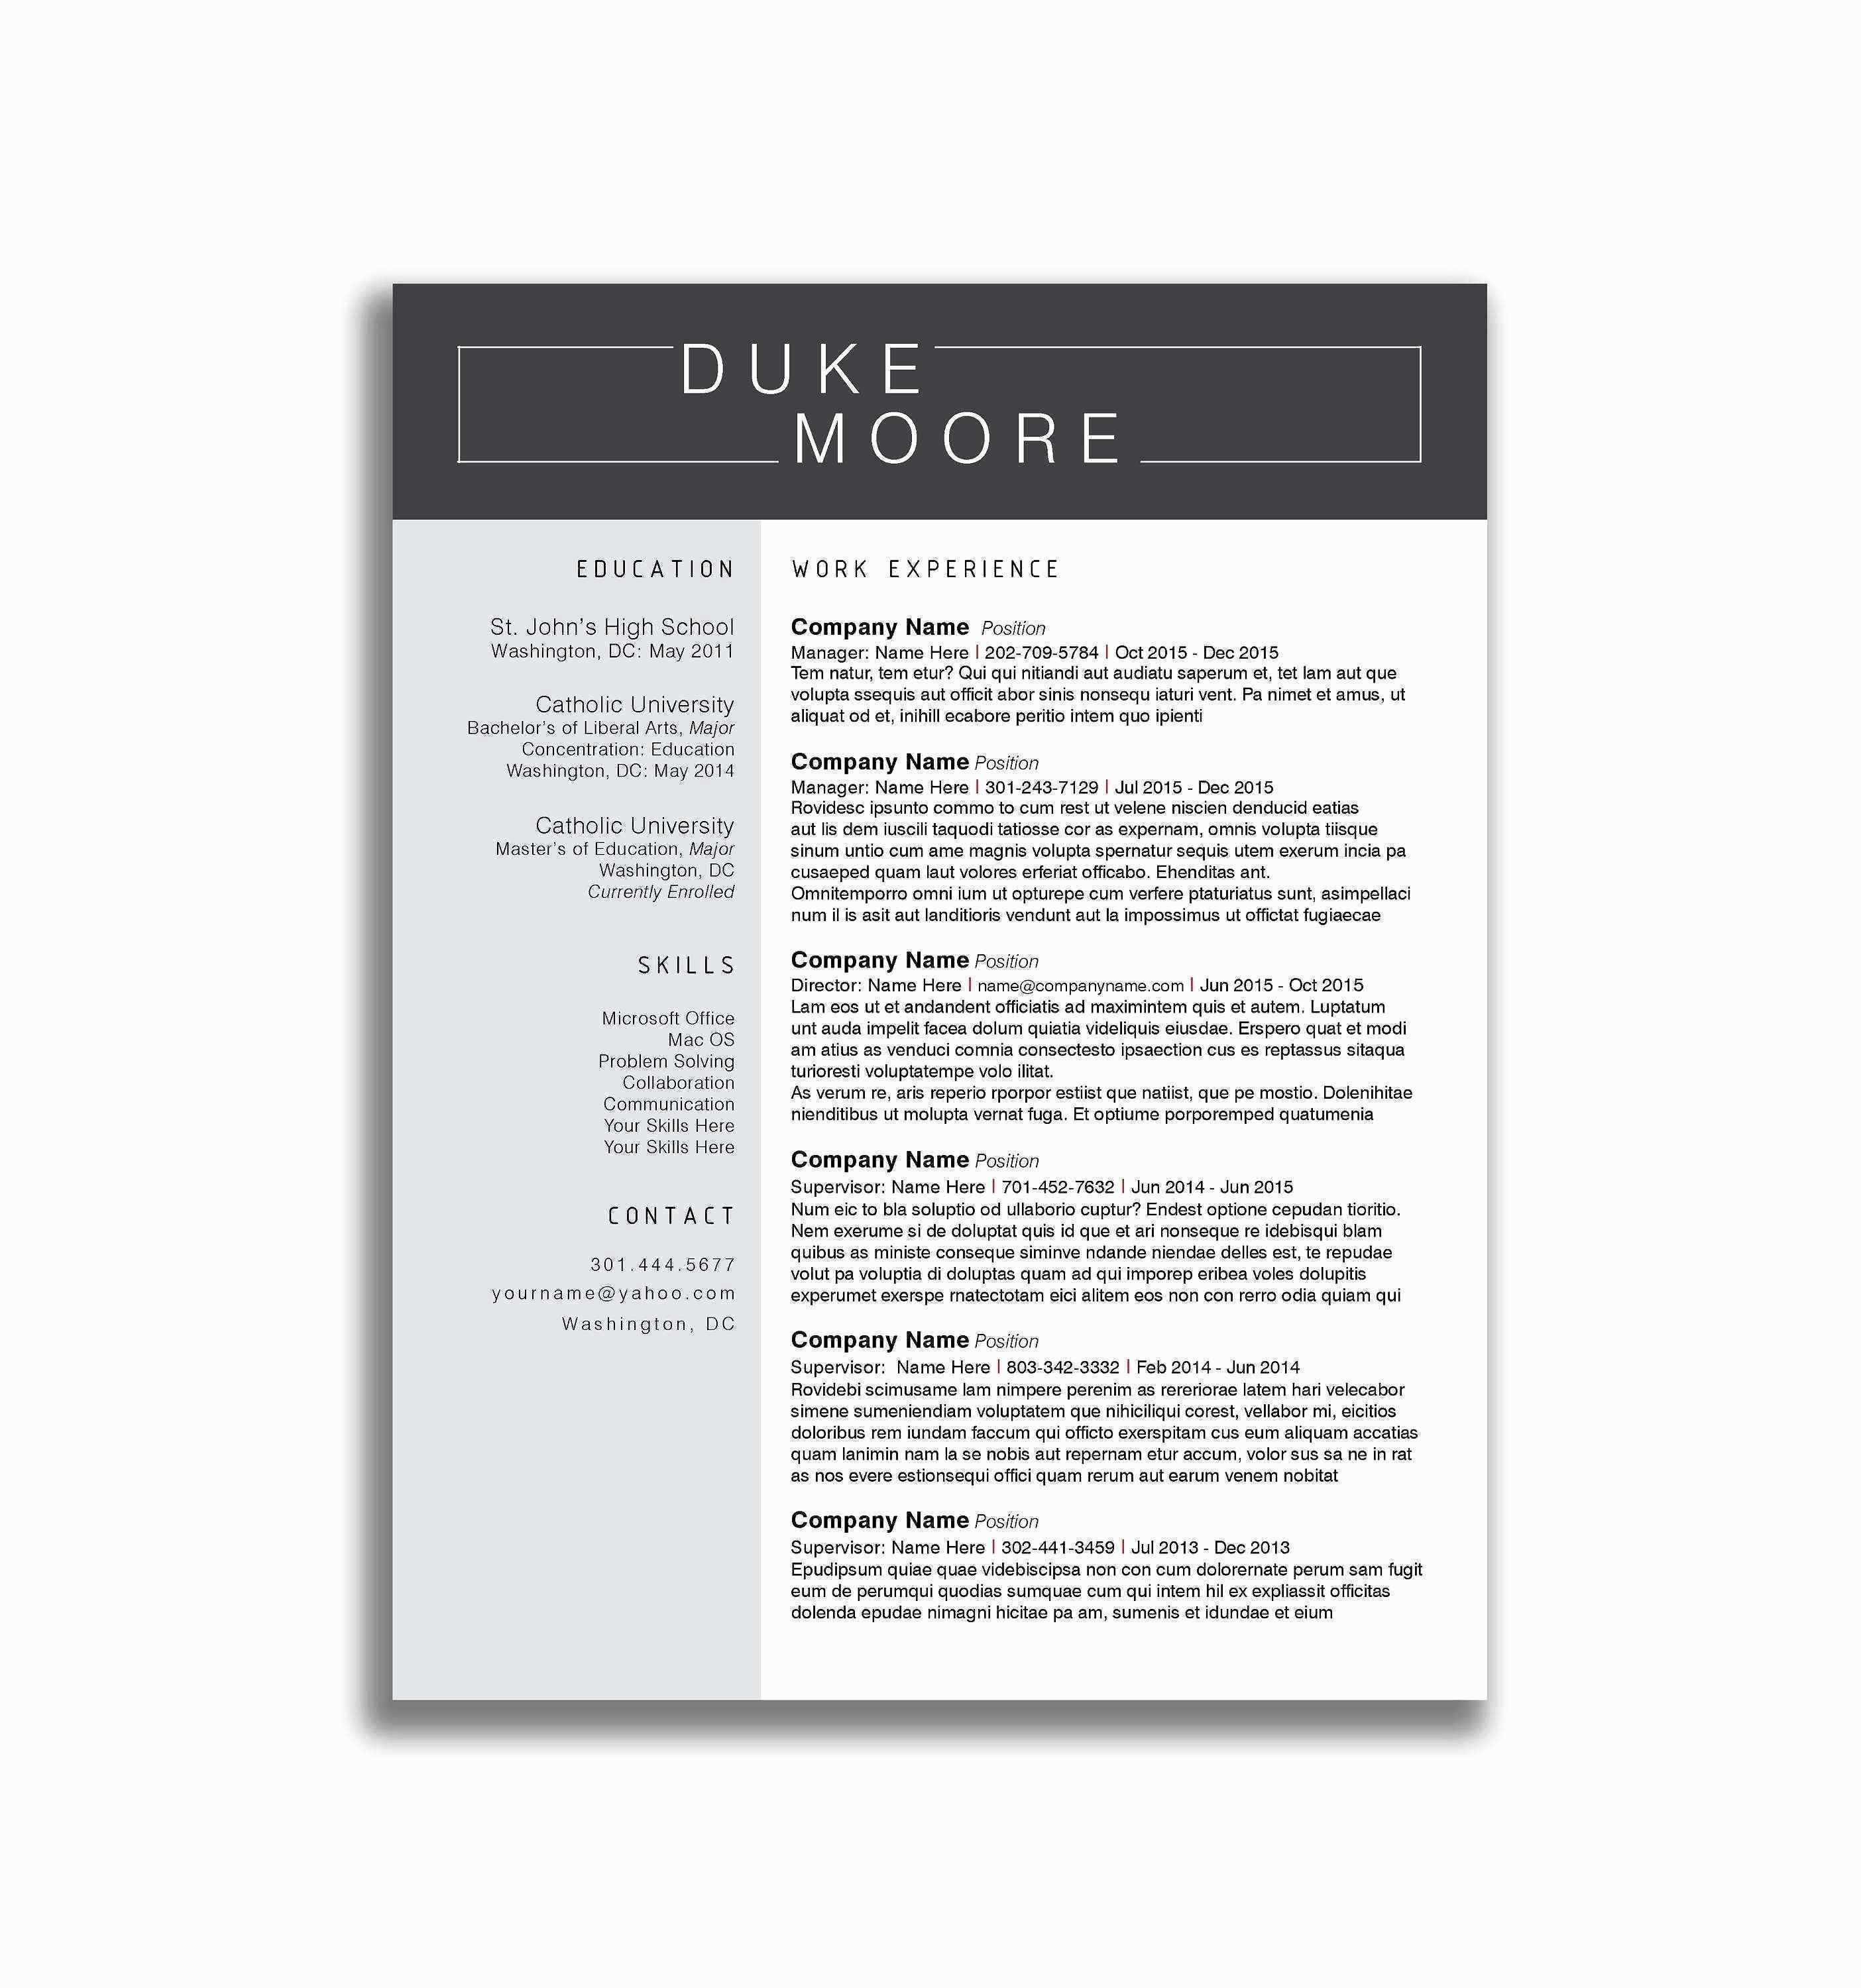 Dental Hygiene Resume Examples - Dental Hygienist Portfolio Sample Refrence Sample Cover Letter for